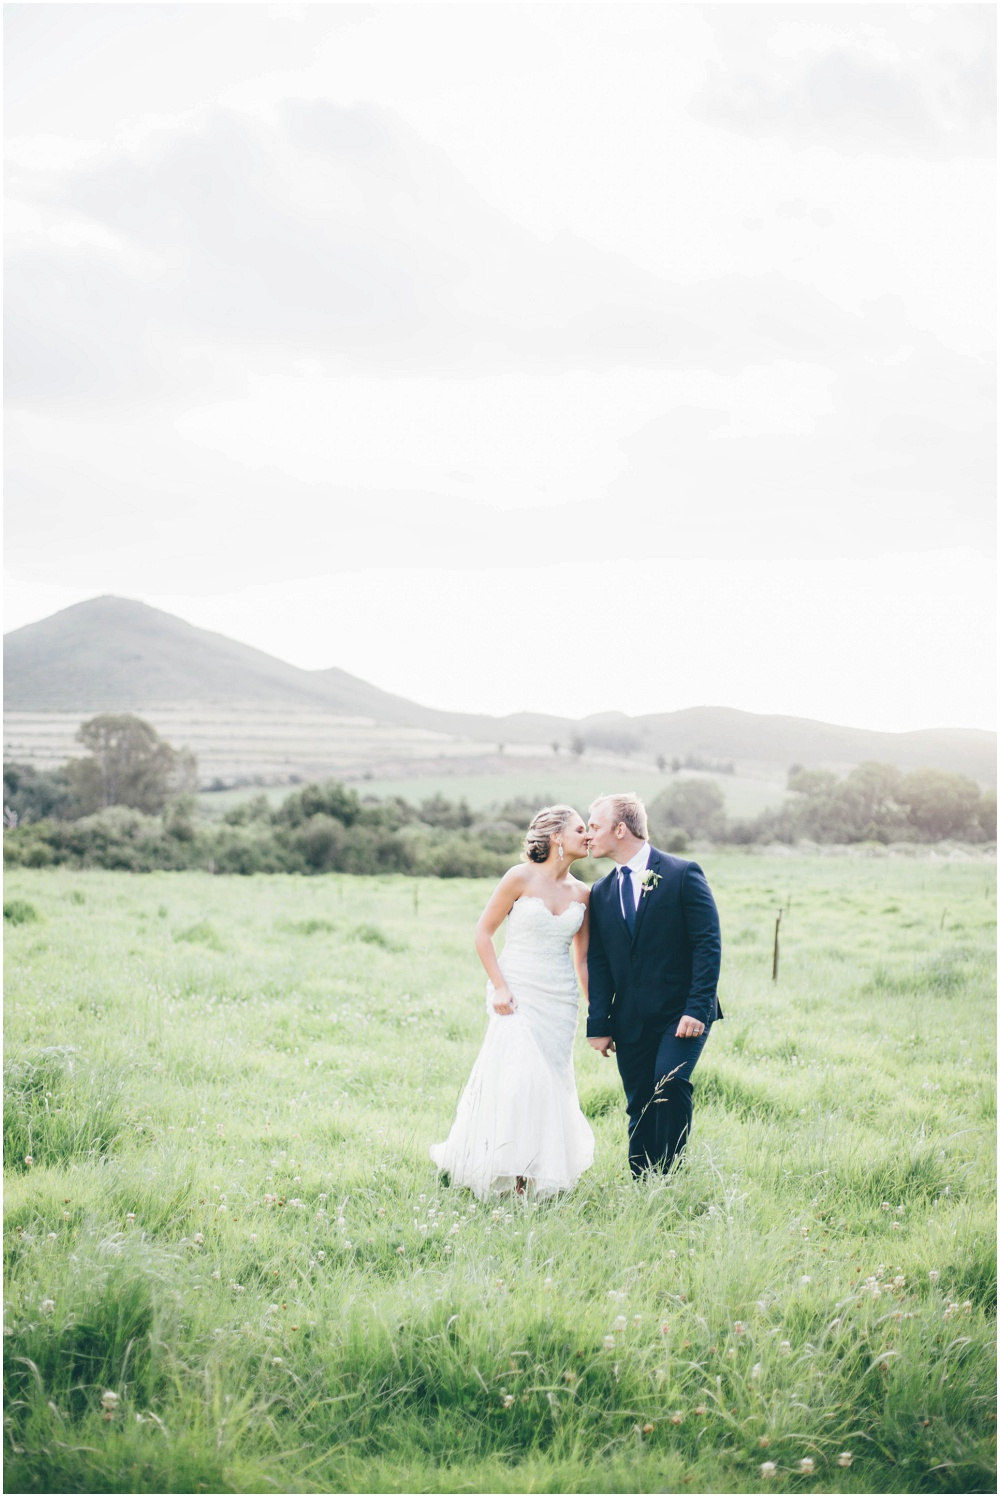 Ronel Kruger Cape Town Wedding and Lifestyle Photographer_2823.jpg